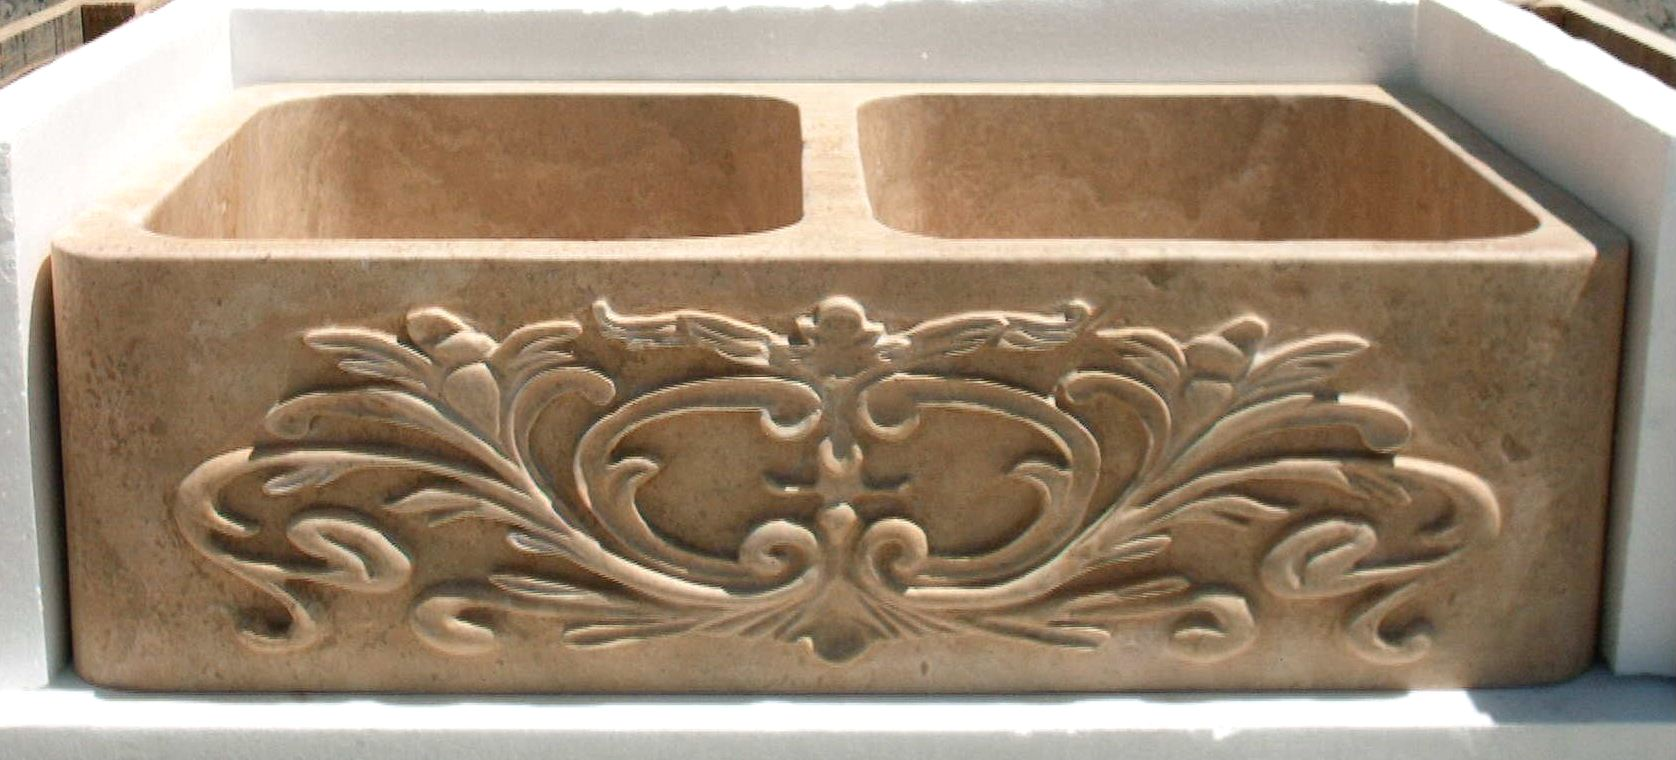 Carved Stone Apron Sink | Carved Stone Farm Sink | Stone Kitchen Sink - Magnolia